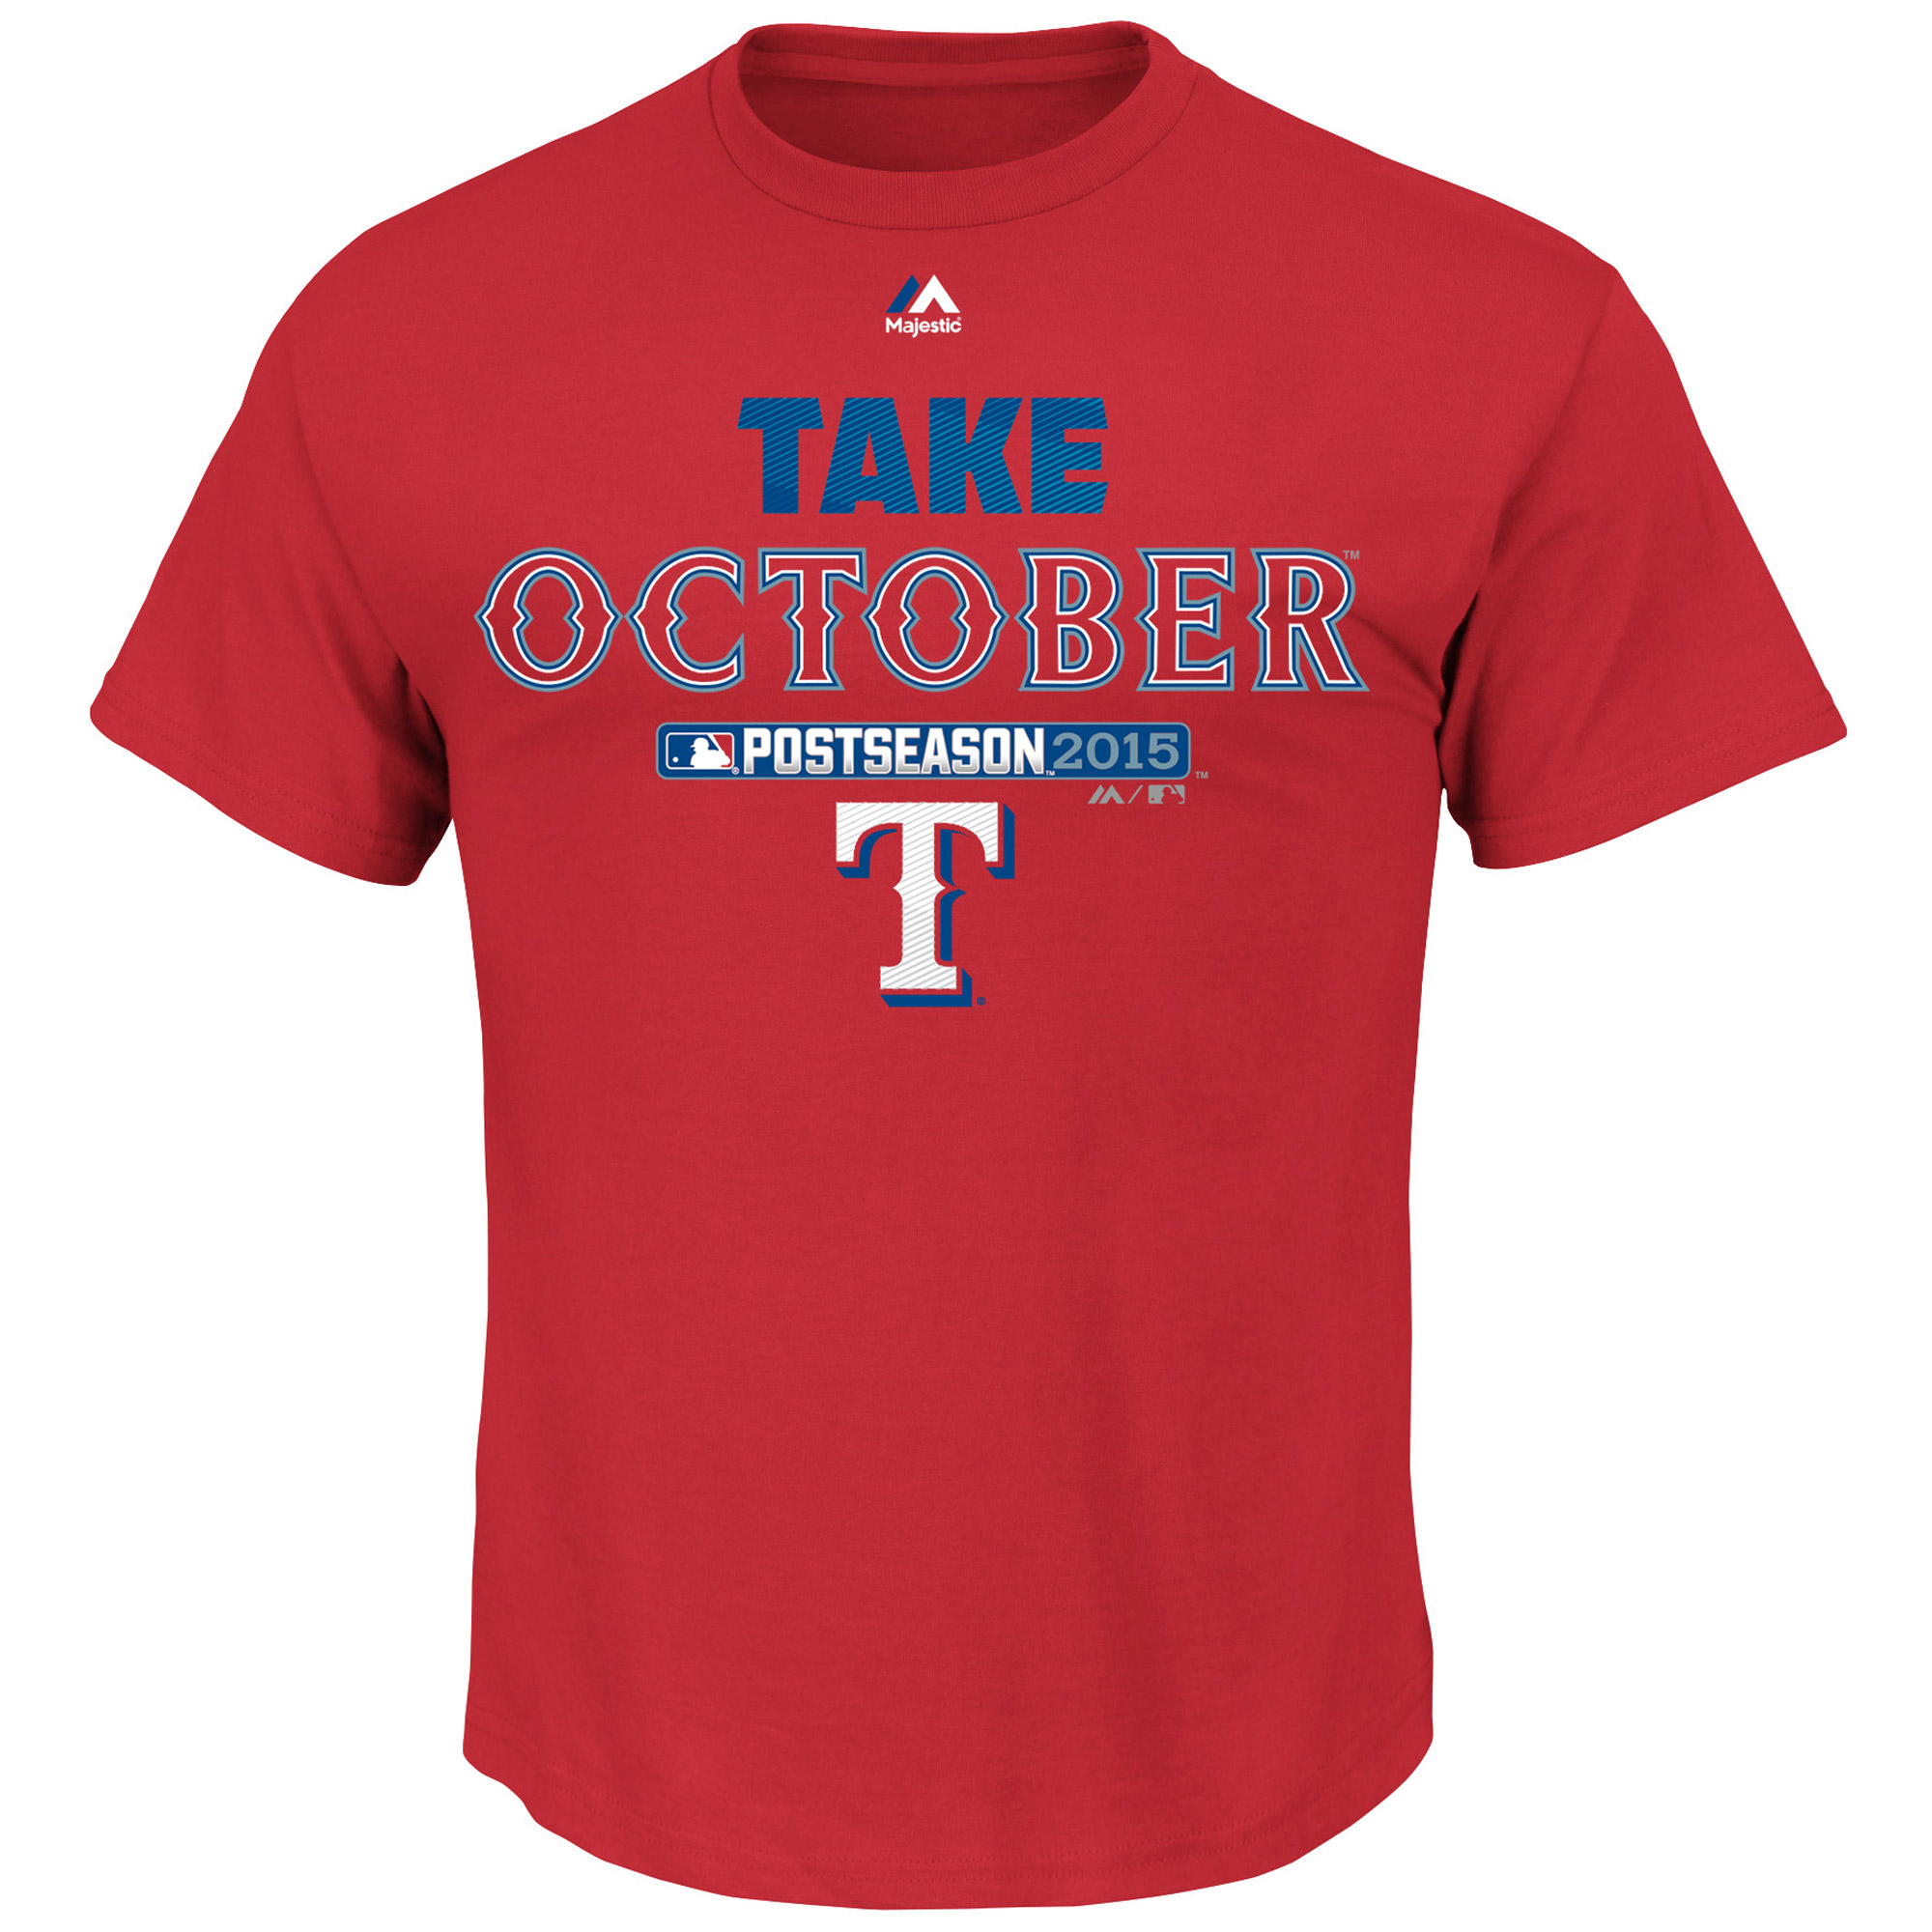 Texas Rangers Majestic 2015 Playoff Authentic Collection Take October T-Shirt - Royal